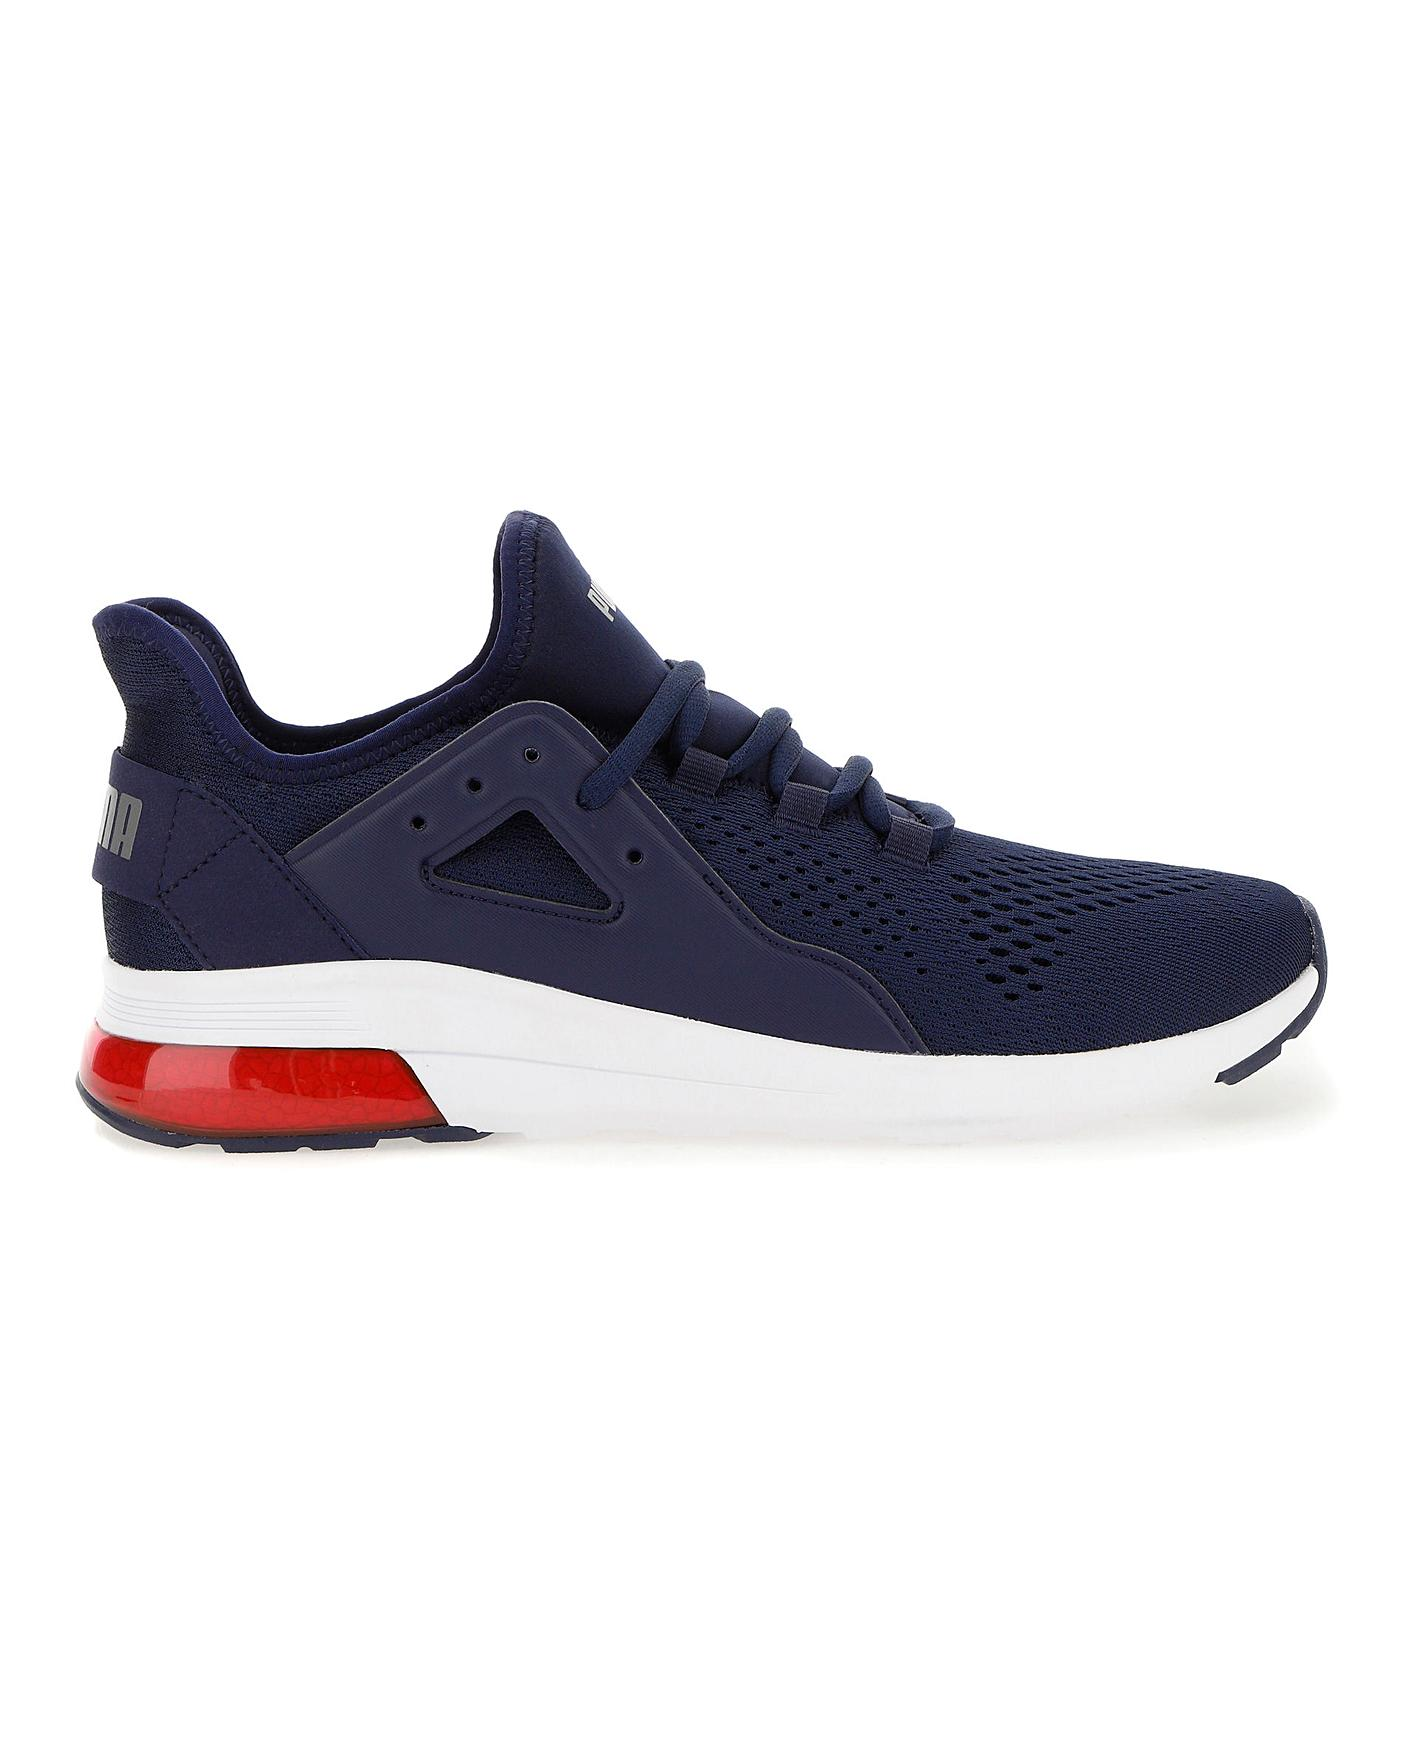 plus récent 4ee93 322a4 Puma Electron Street Eng Mesh Trainers